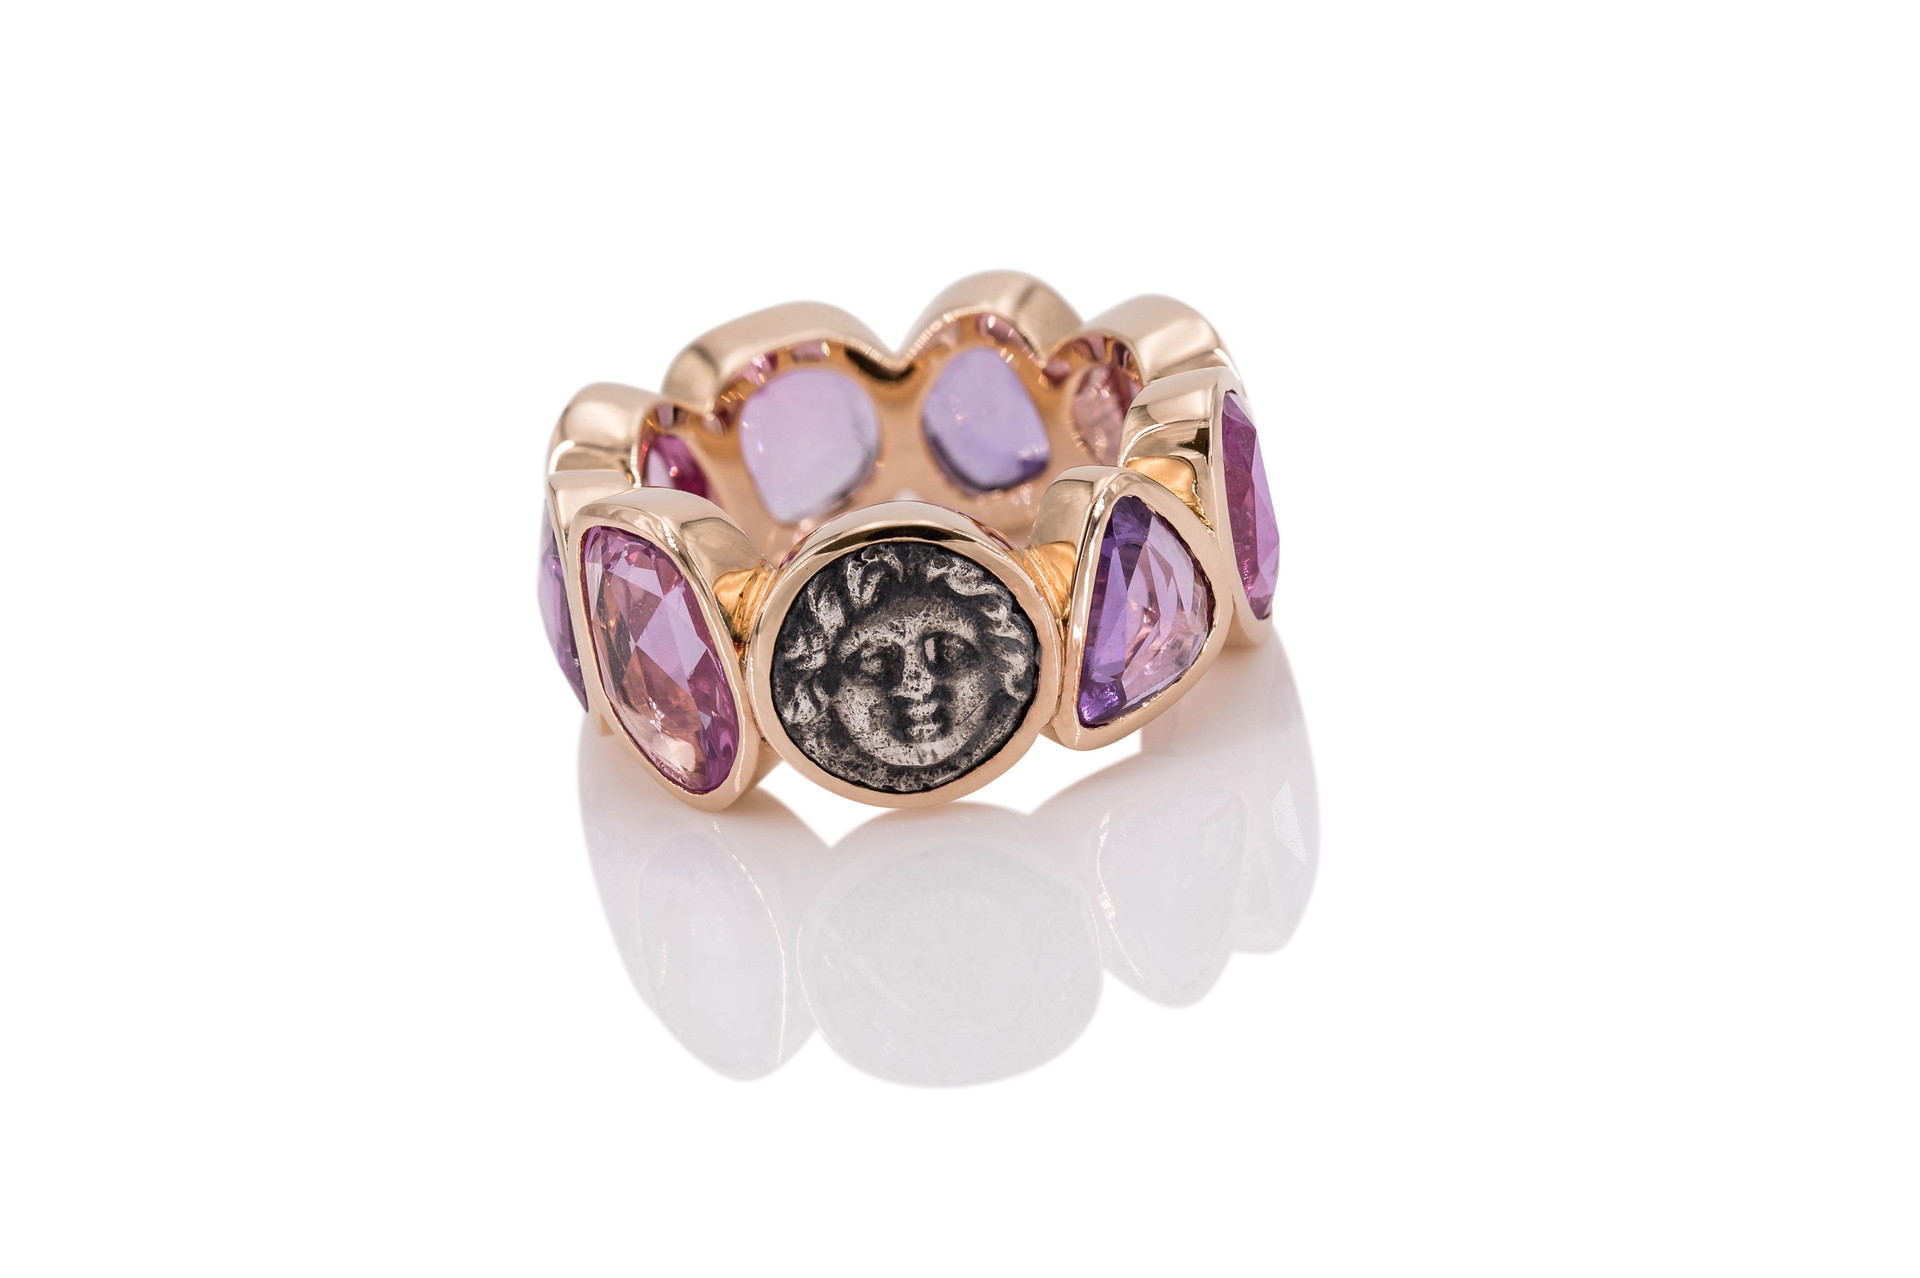 18k GOLD ETERNITY RING | GORGON | SAPPHIRES 8 sapphires 9,97 ct purple-pink ancient greek coin 350-300 b.c.  In Greek mythology, a Gorgon is a female creature. Because of their legendary and powerful gaze that could turn one to stone, images of the Gorgons were put upon objects and buildings for protection.